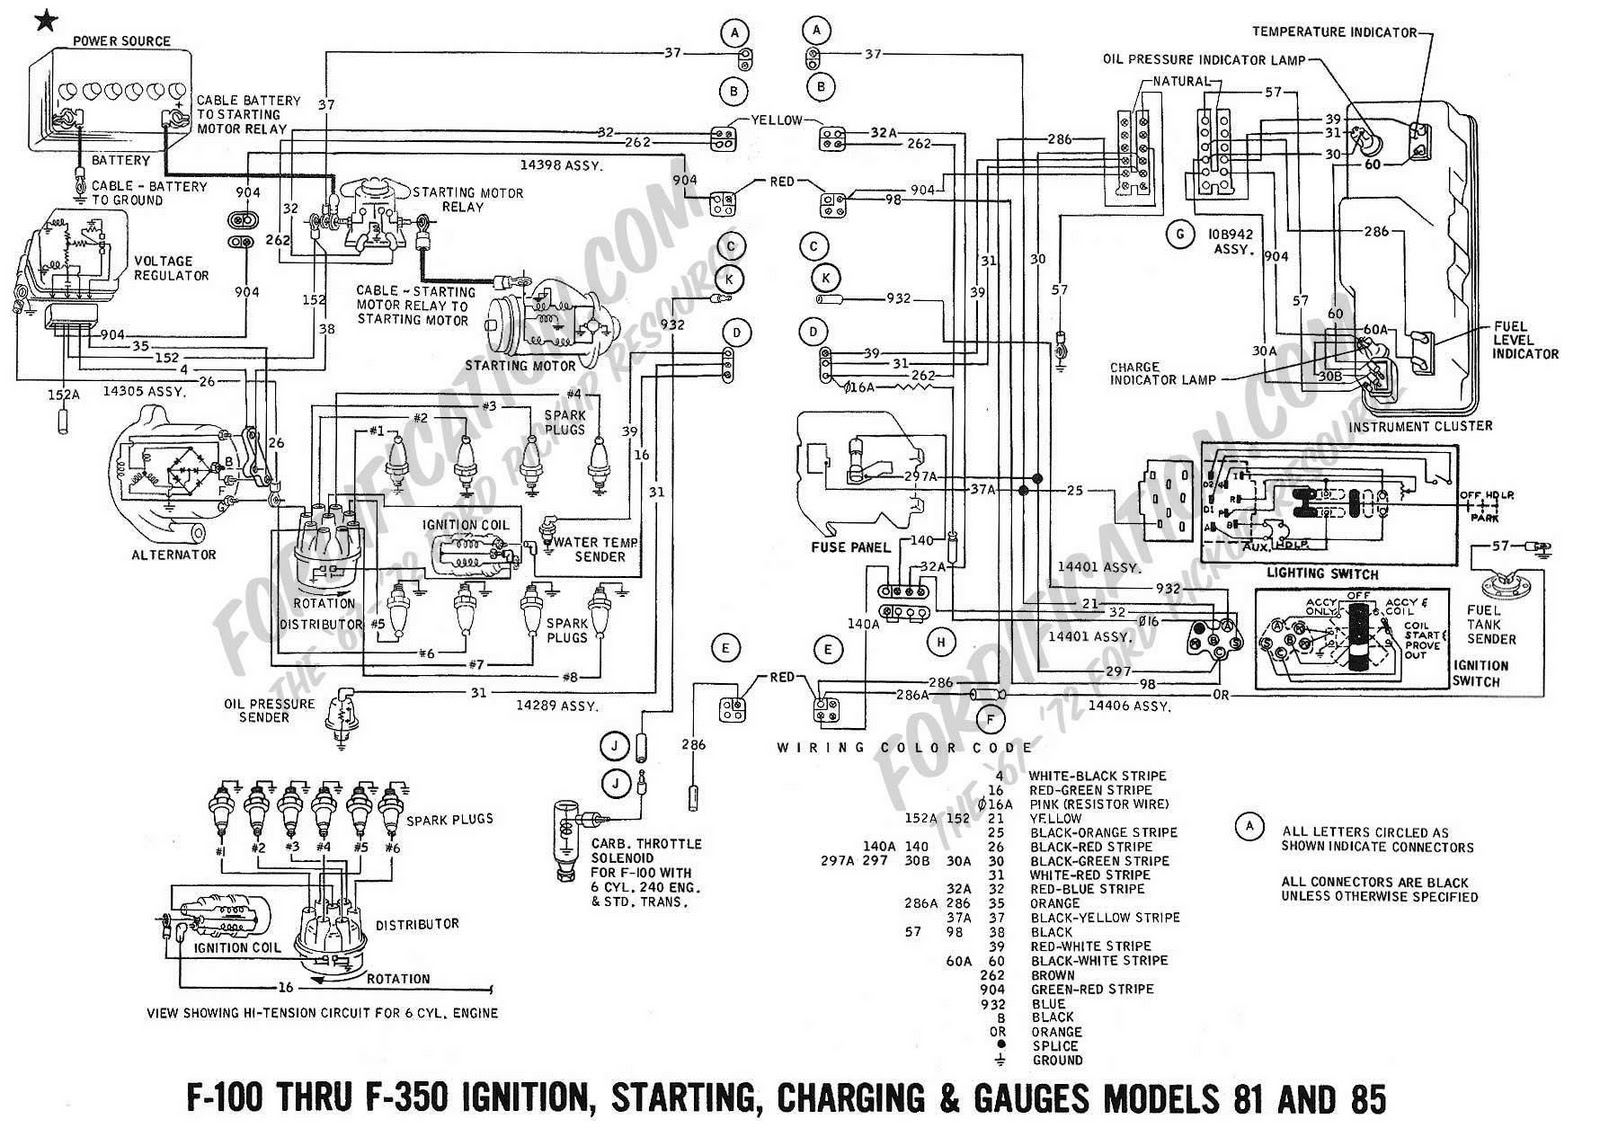 1957 Chevy Fuel Gauge Wiring Diagram Trusted Ignition Switch Jeep 1974 Simple Guide About 1950